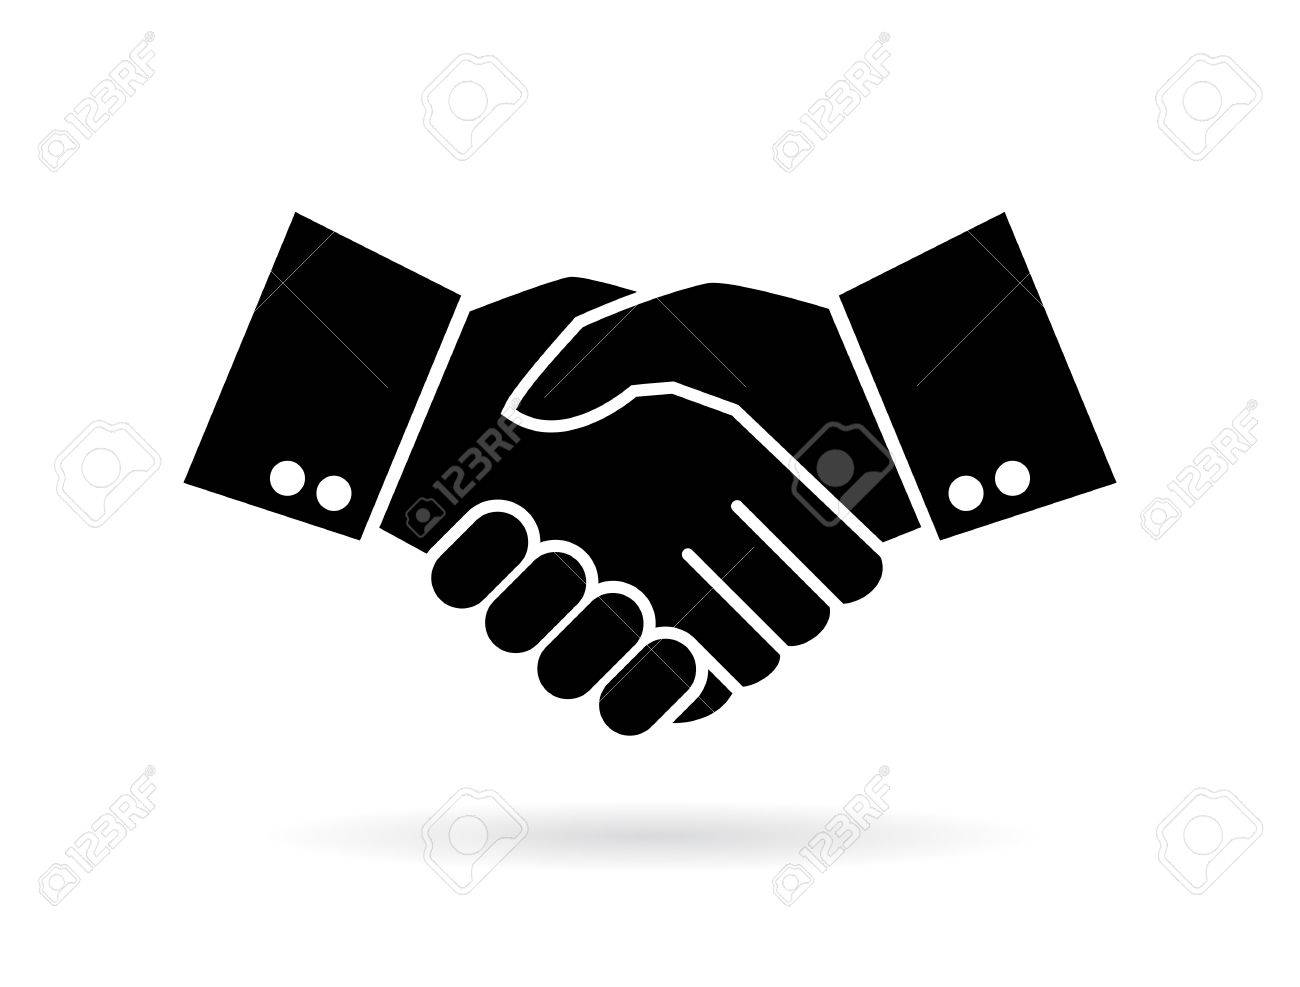 hand shake silhouette vector icon royalty free cliparts vectors rh 123rf com shaking hands vector png shaking hands vector png